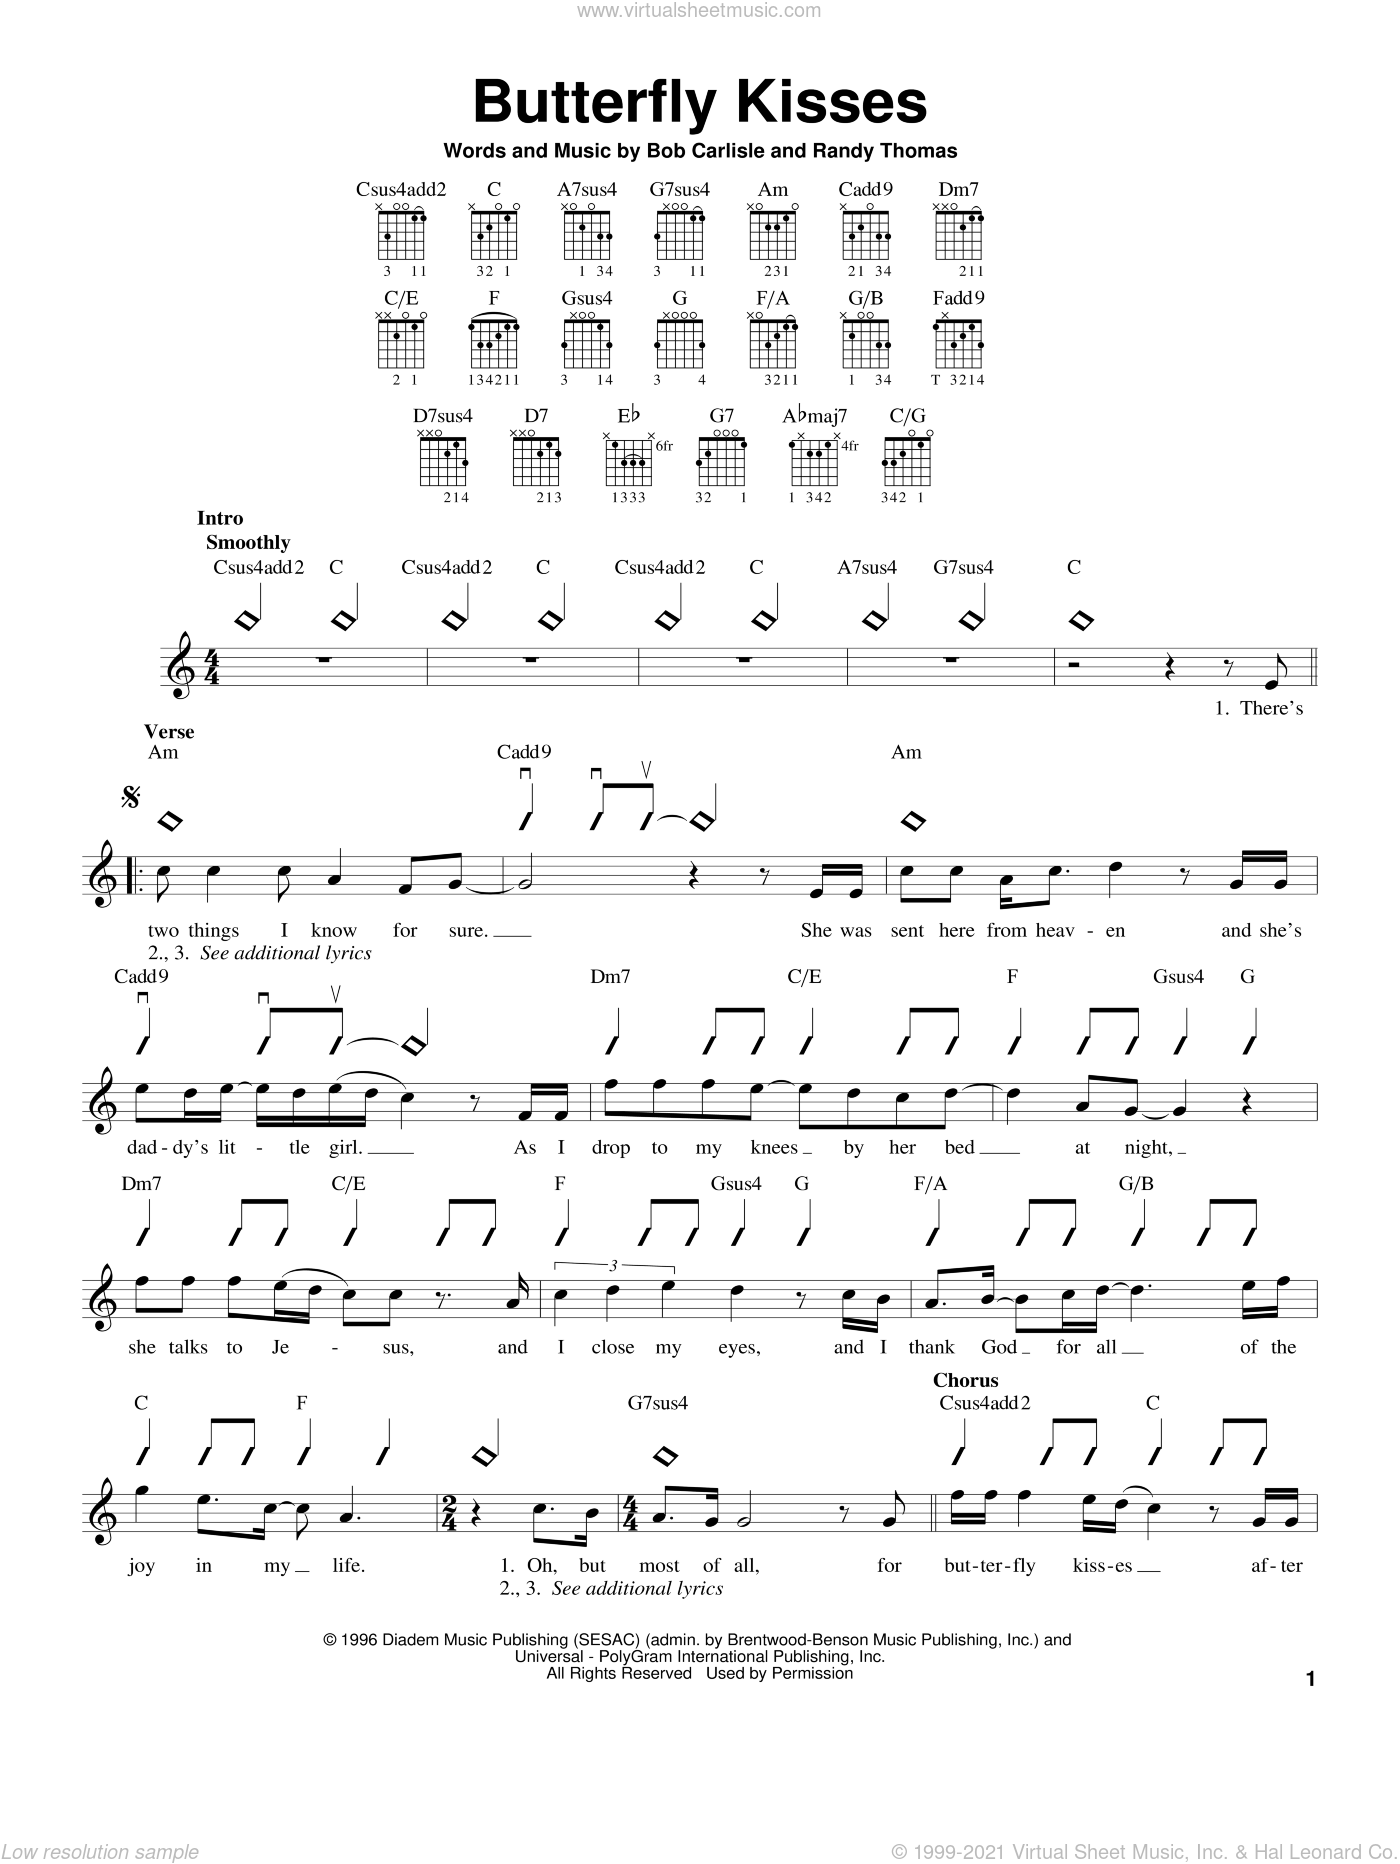 Butterfly Kisses sheet music for guitar solo (chords) by Randy Thomas, Jeff Carson and Bob Carlisle. Score Image Preview.